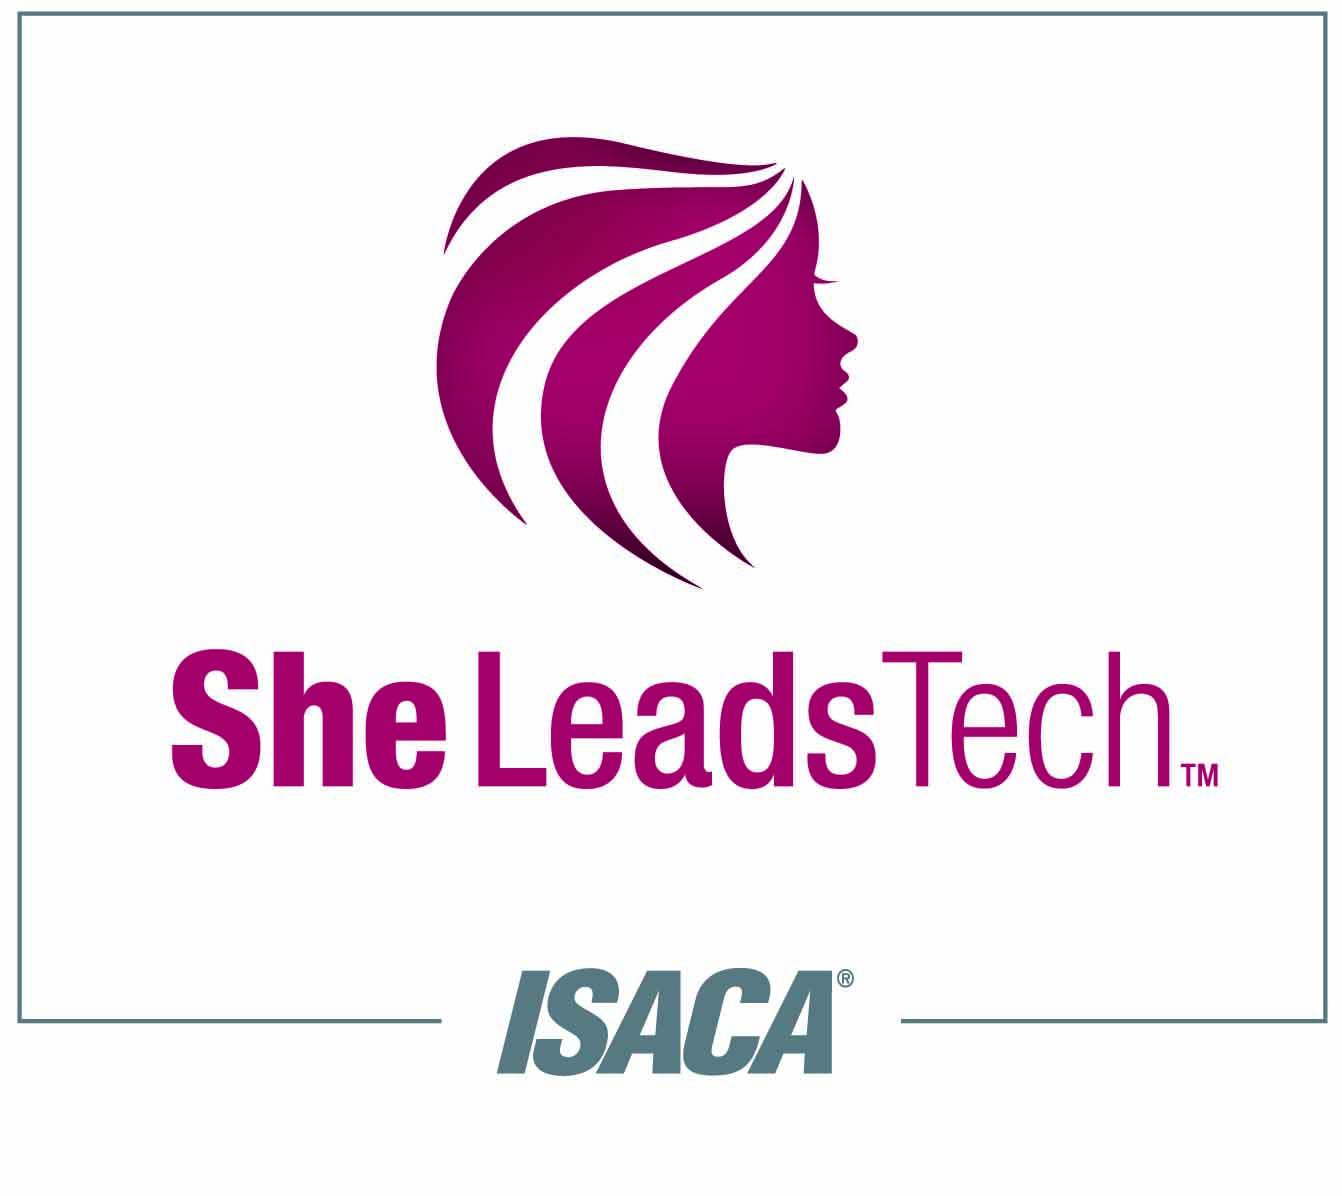 SheLeadsTech+ISACA+box